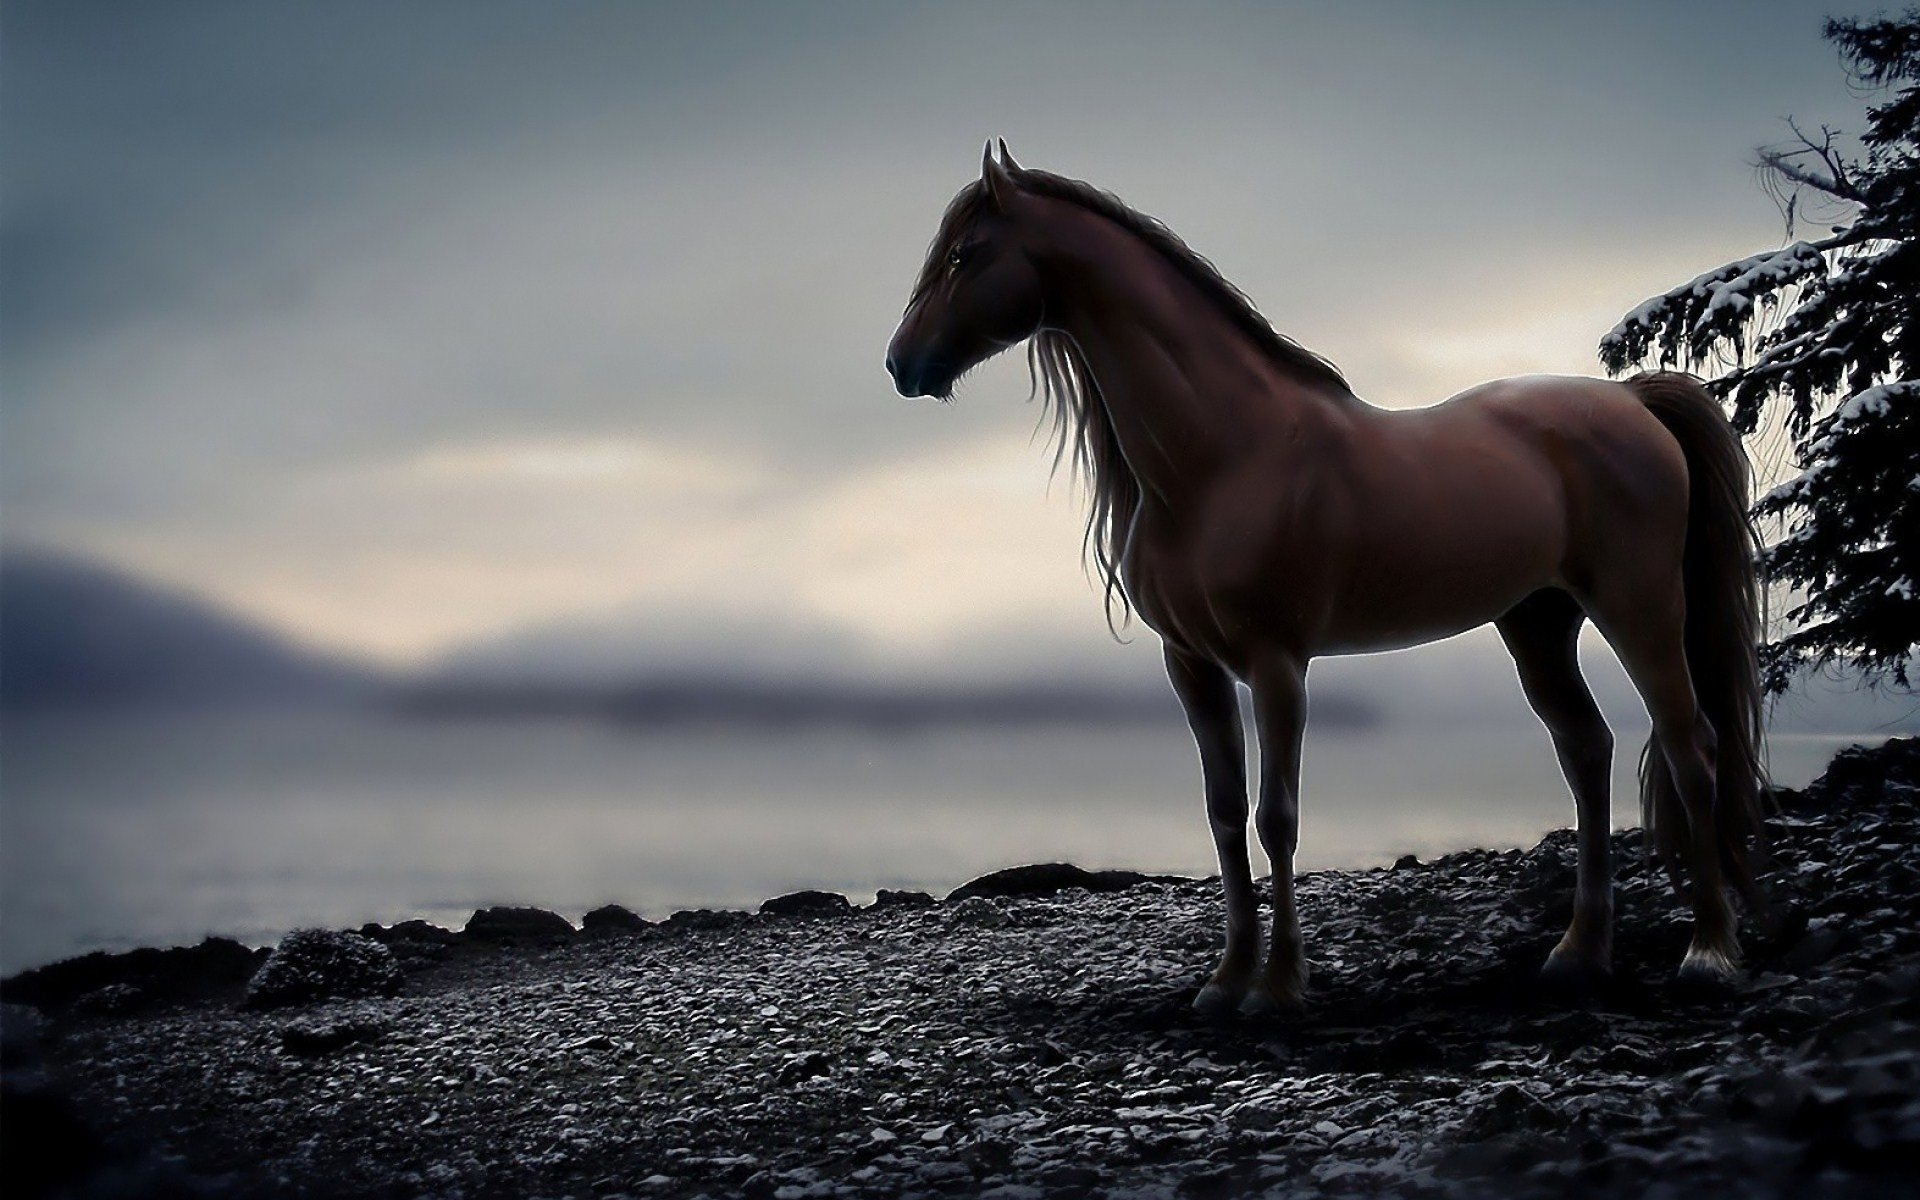 horse full hd wallpaper and background image | 1920x1200 | id:472763